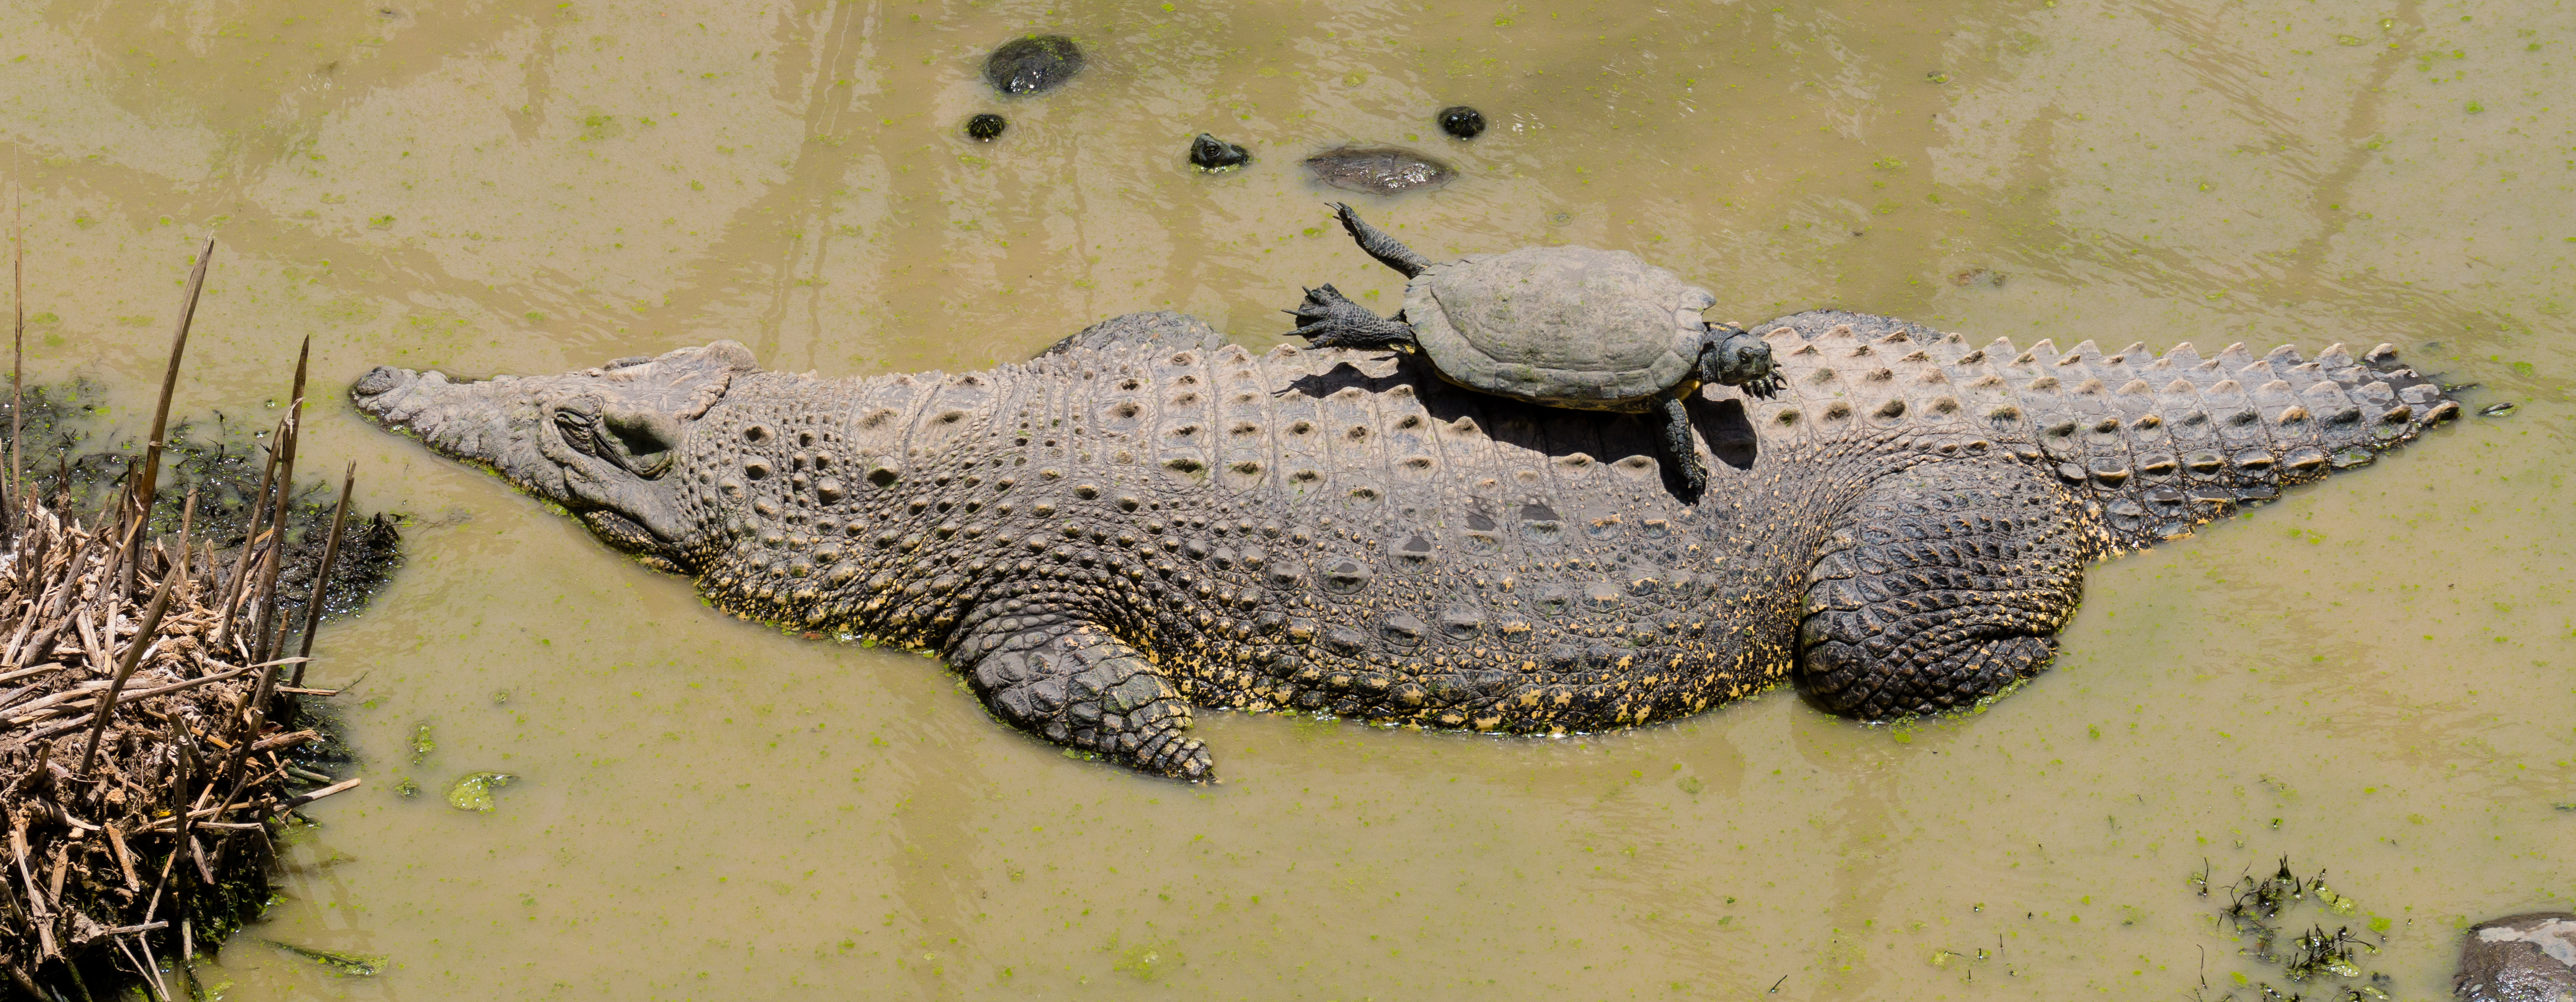 Image result for turtle, monkey, crocodile